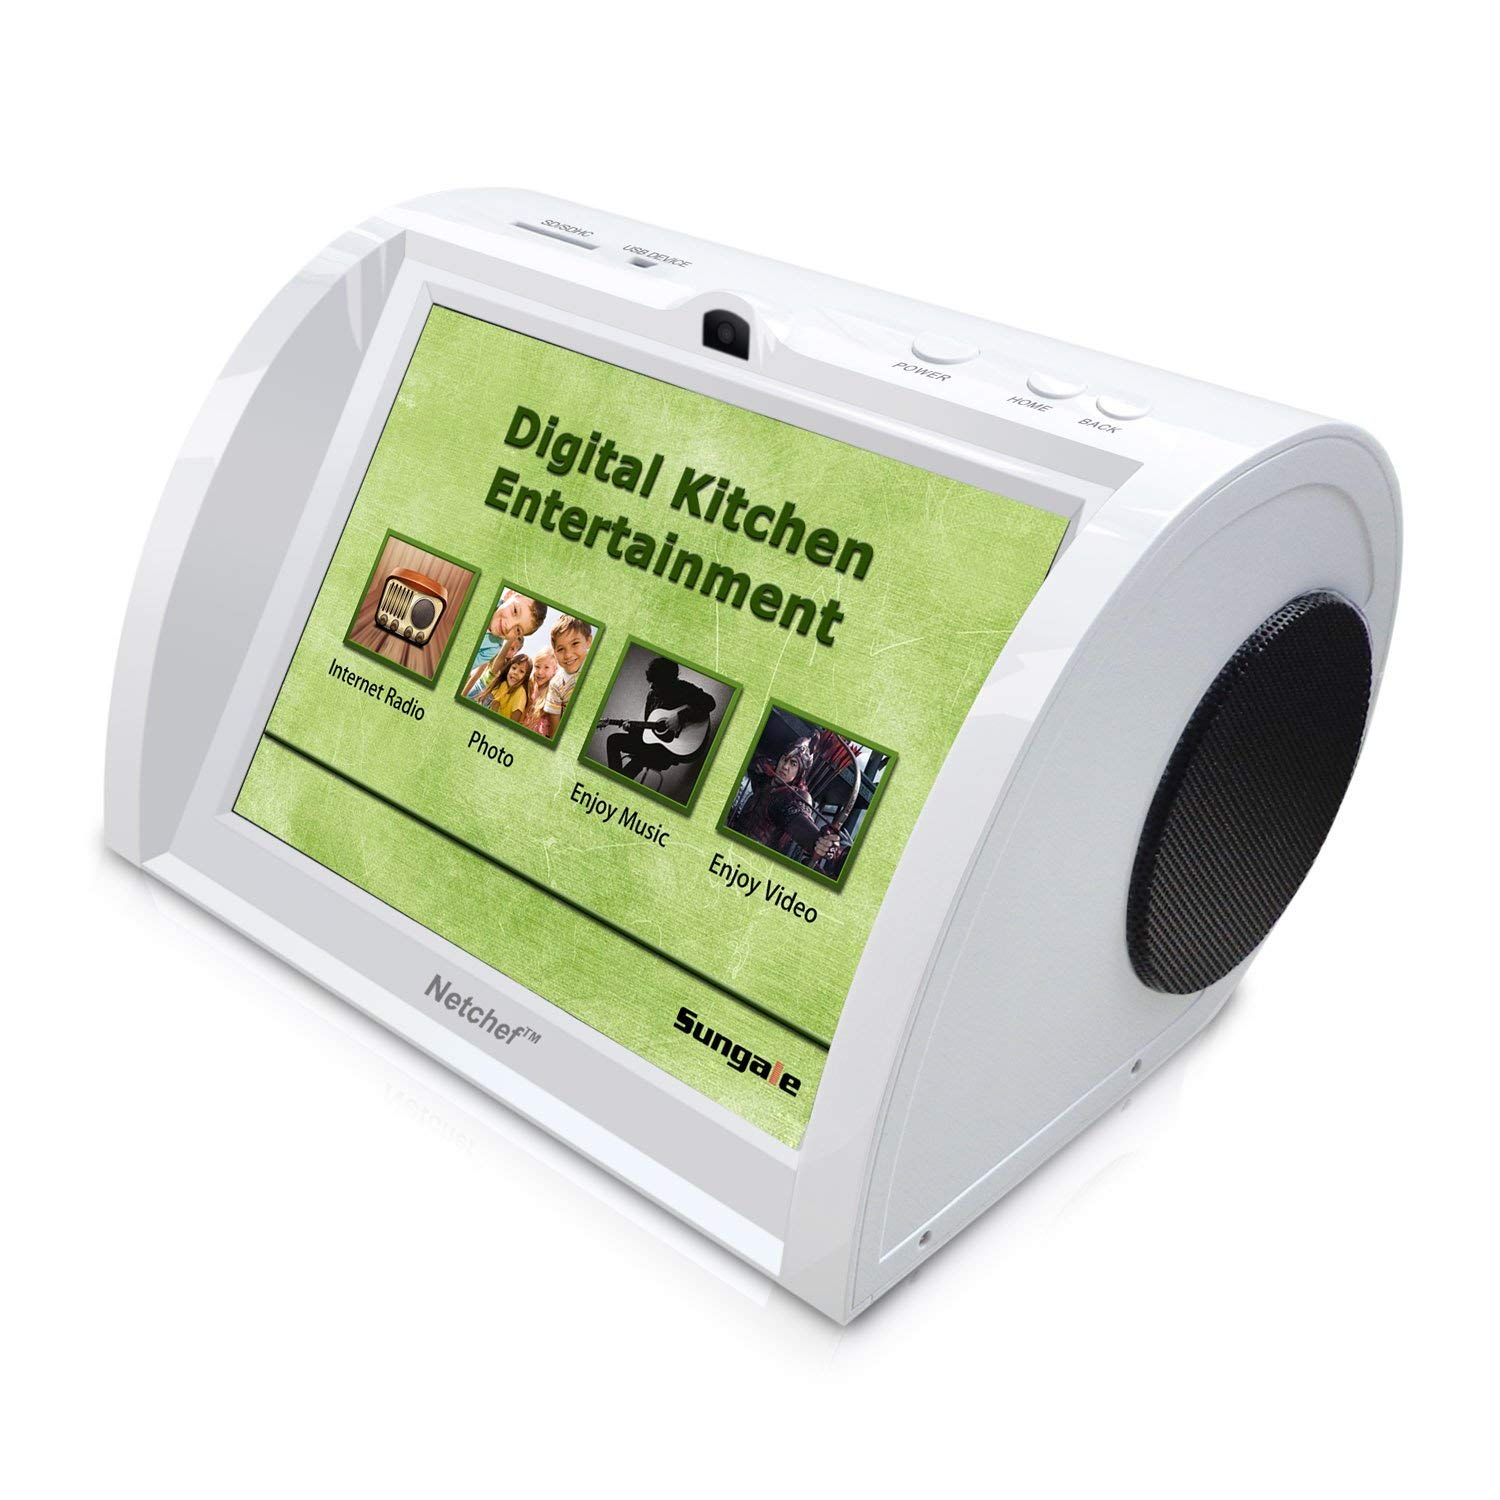 Kitchen Radio, Counter-top Entertainment Center, Hi-Fi Speakers, Audio Book, 15K+ Radio Stations, Streaming Videos, Movies, Music, Auto Wi-Fi, Social Media, Recipes, 8''Touch Panel by Sungale